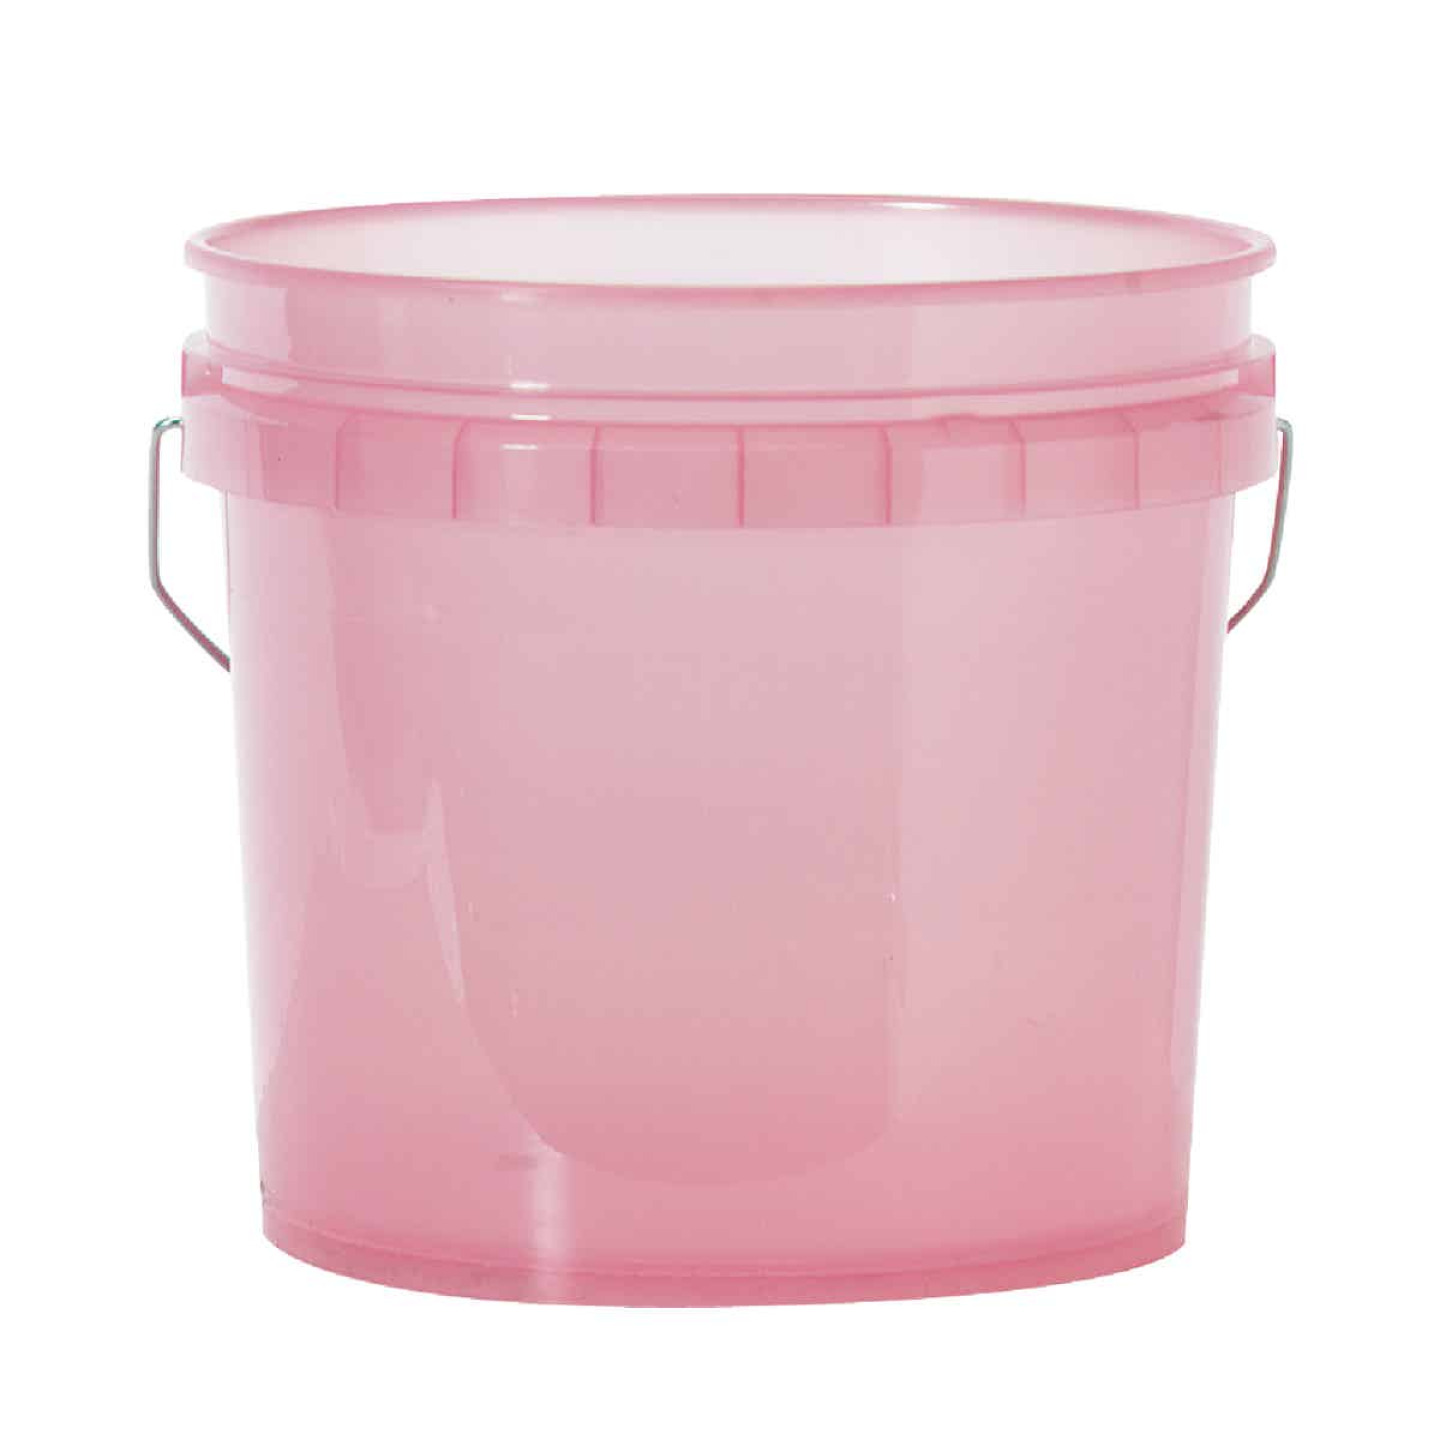 Leaktite 3.5 Gal. Red Translucent Pail Image 1